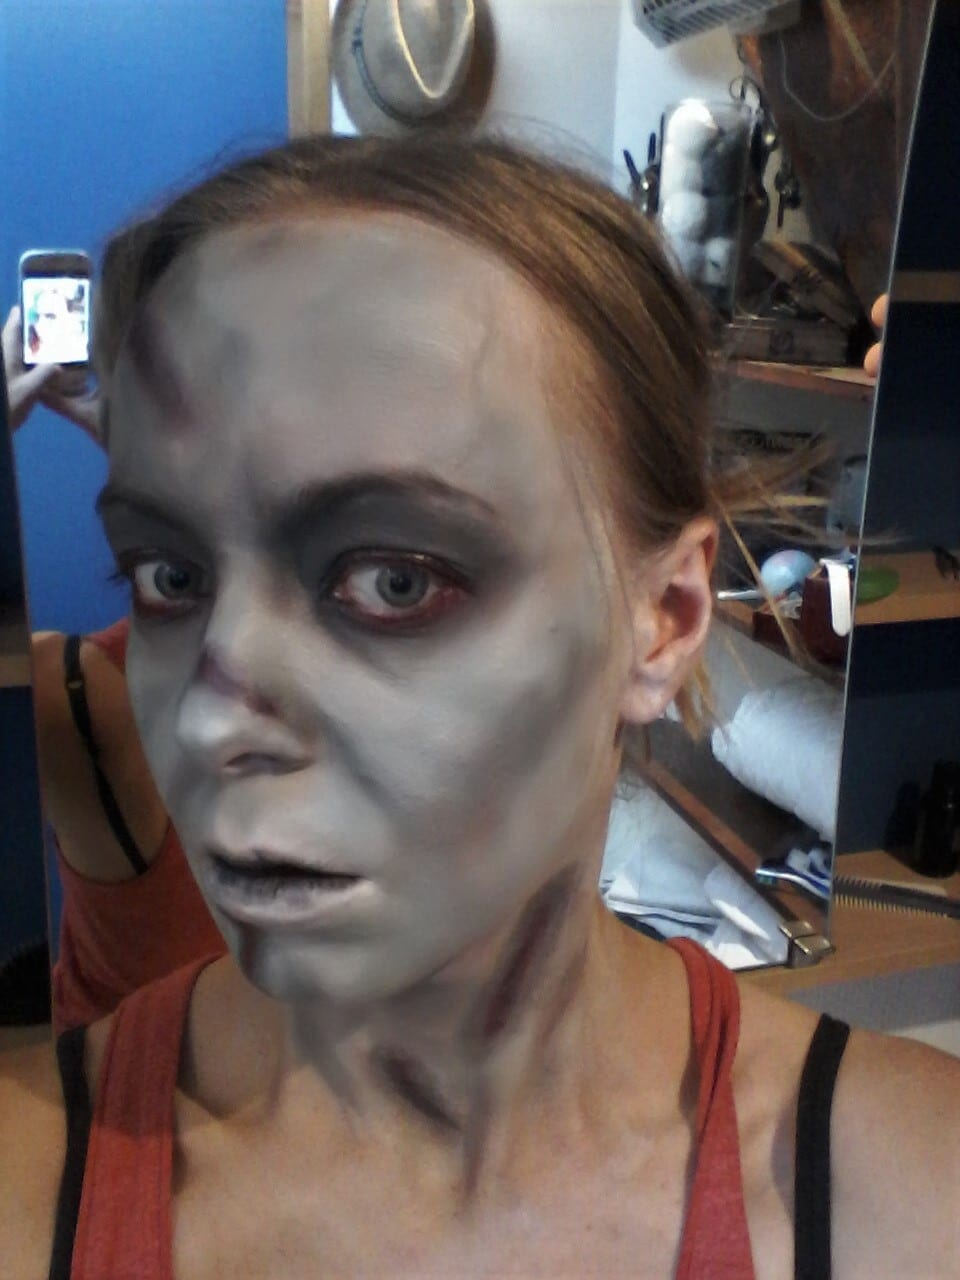 Maquillage halloween - l'exorciste - yeux noirs et rouge